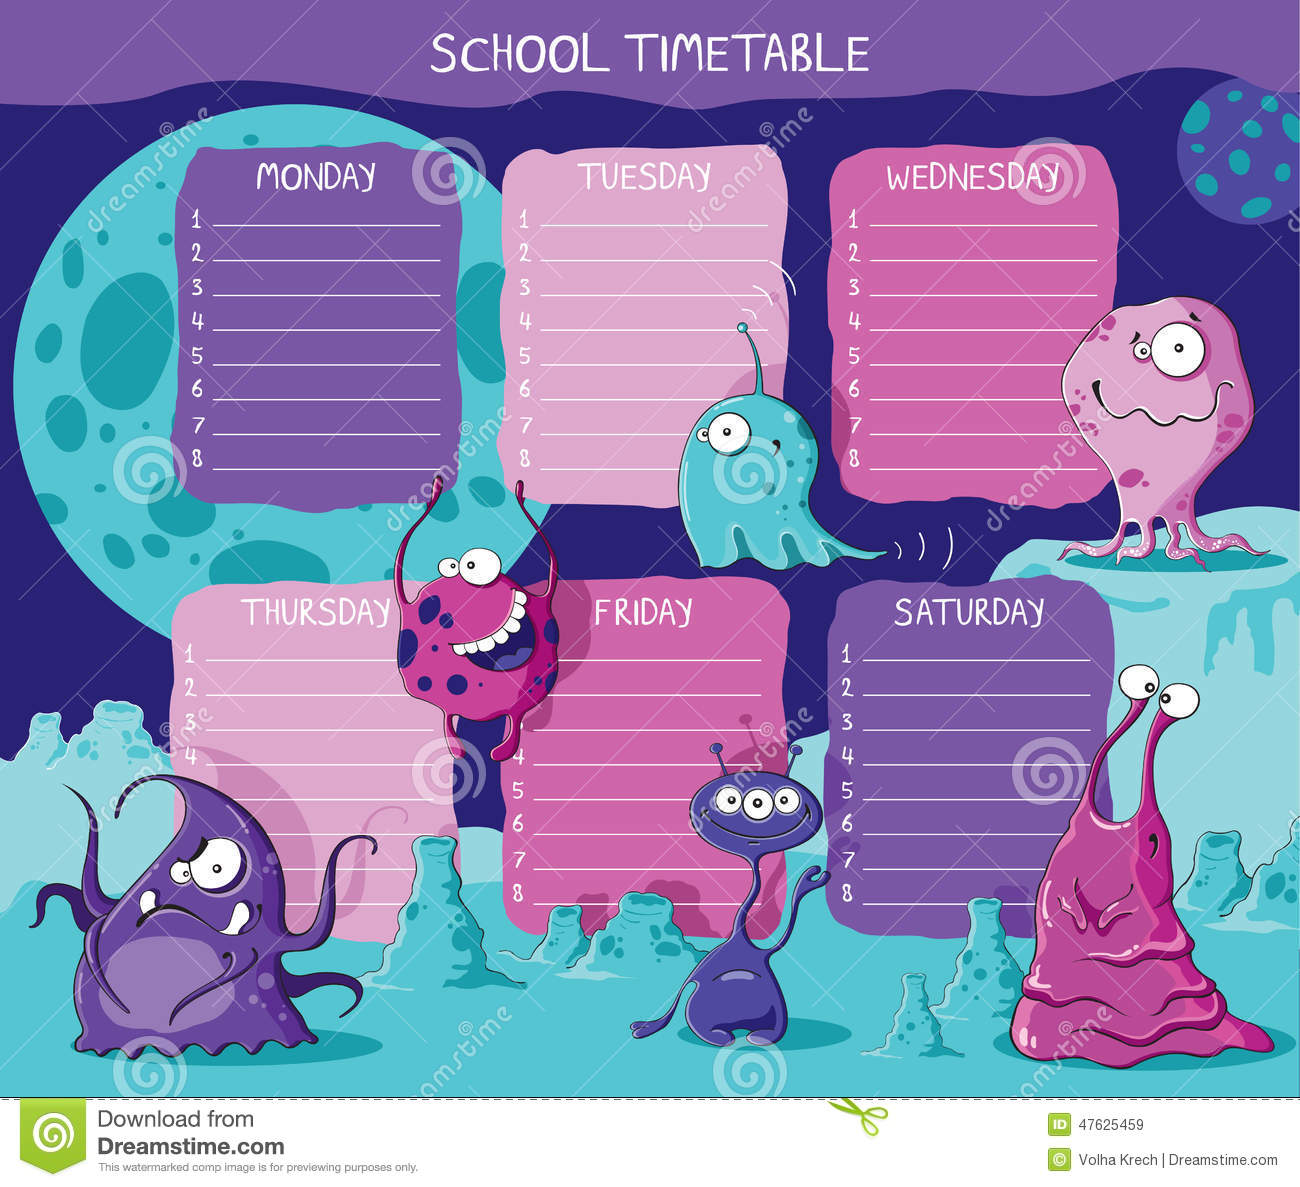 Quotes On School Time Table: Timetable Cartoons, Illustrations & Vector Stock Images